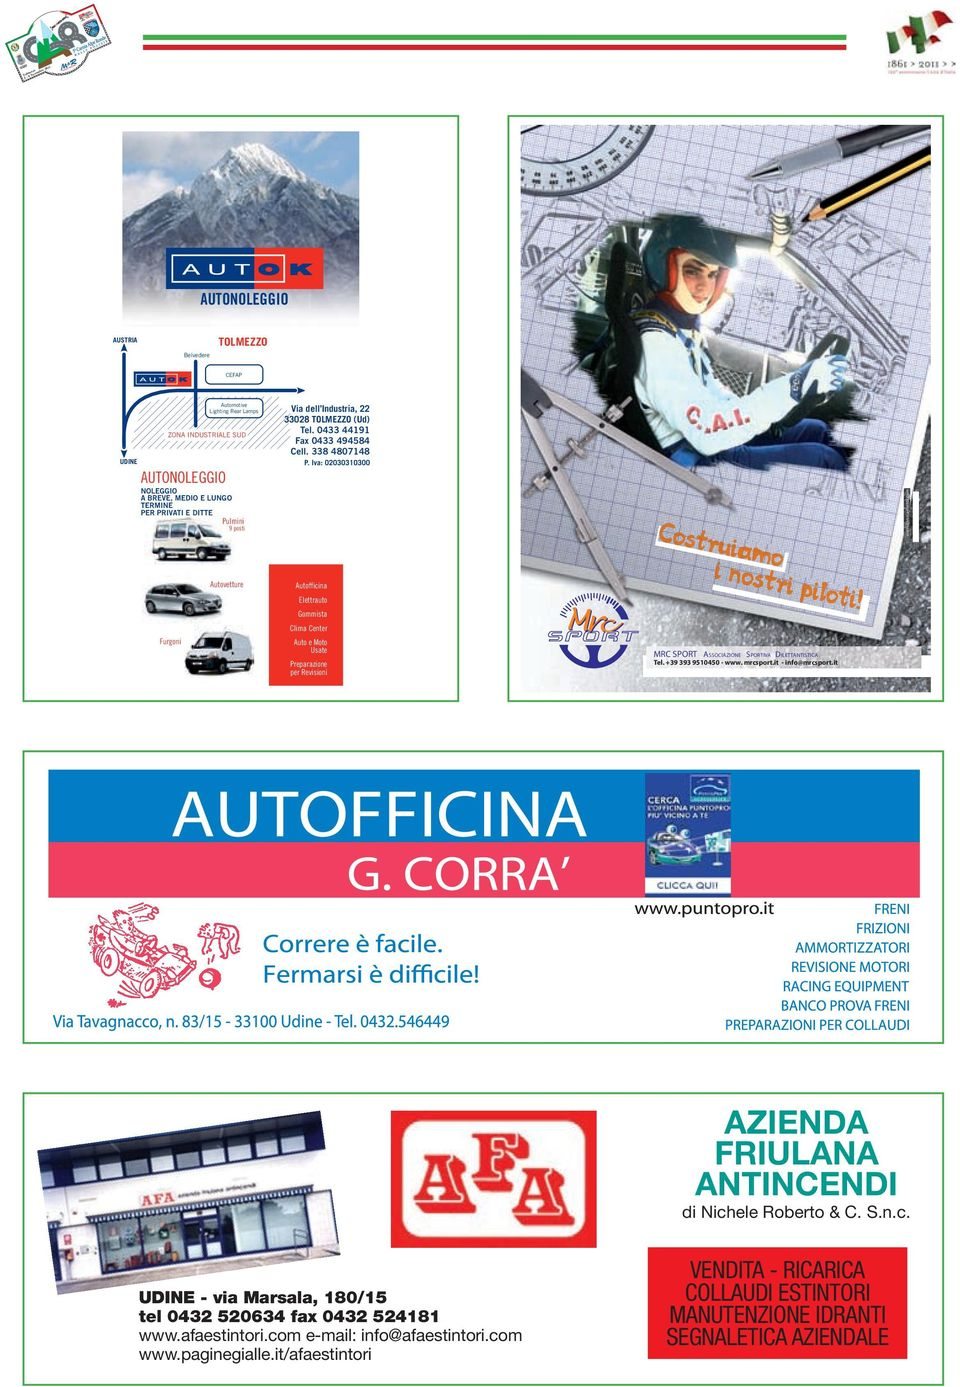 Iva: 02030310300 AUSTRIA AUTONOLEGGIO Belvedere TOLMEZZO CEFAP UDINE Automotive Lighting Rear Lamps ZONA INDUSTRIALE SUD Via dell Industria, 22 33028 TOLMEZZO (Ud) Tel.